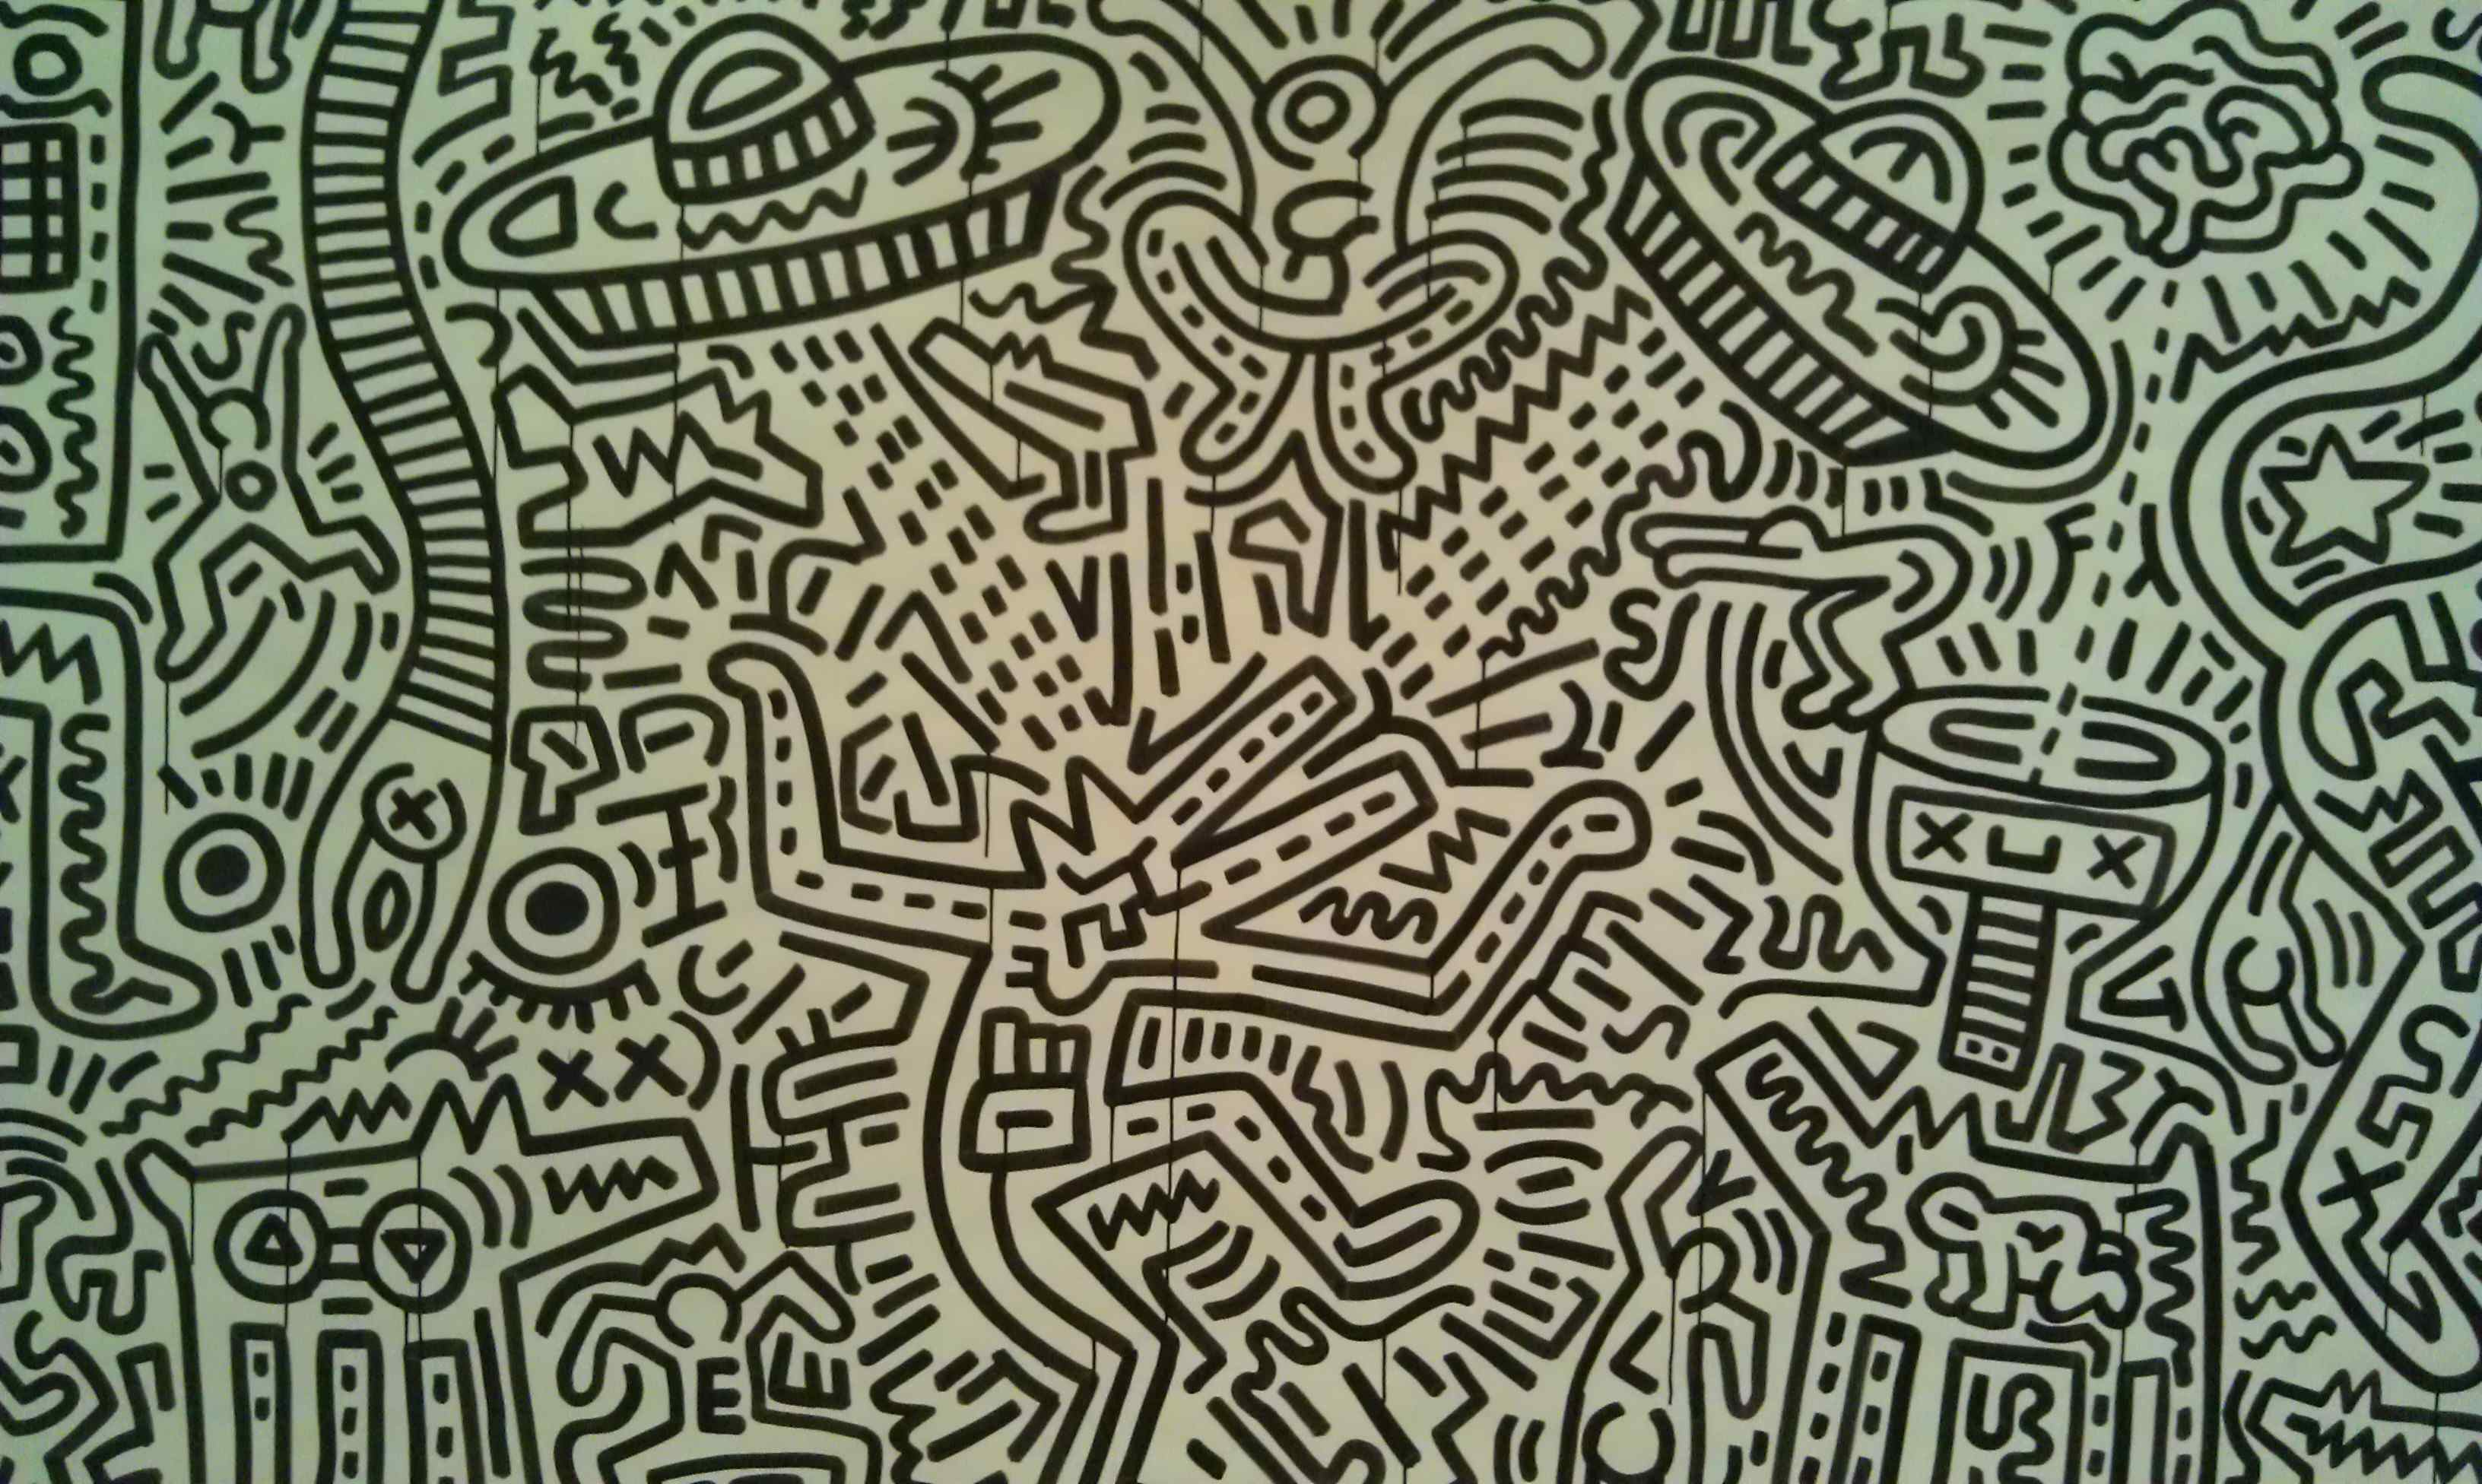 Keith Haring and The Rhythms of Painting | hydramag